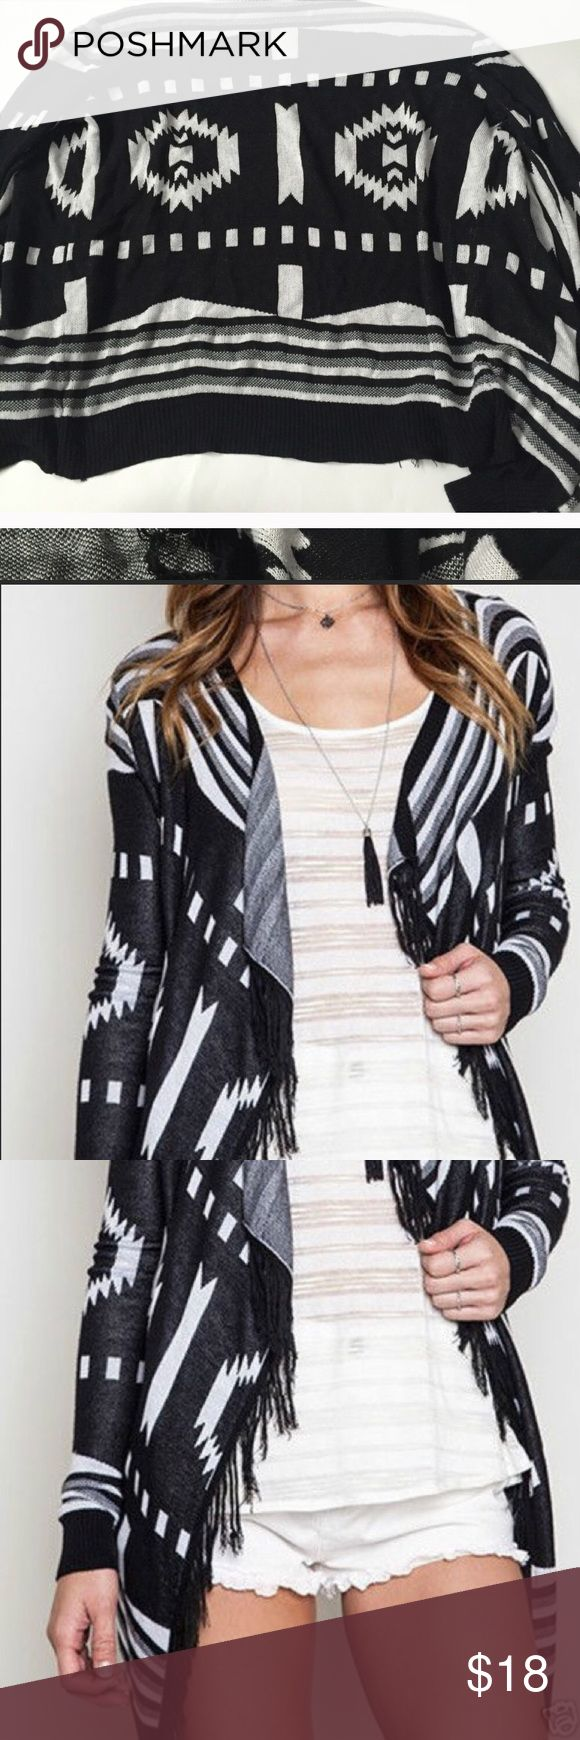 Black and white cardigan UmGee black and white cardigan NWT Umgee Sweaters Cardigans